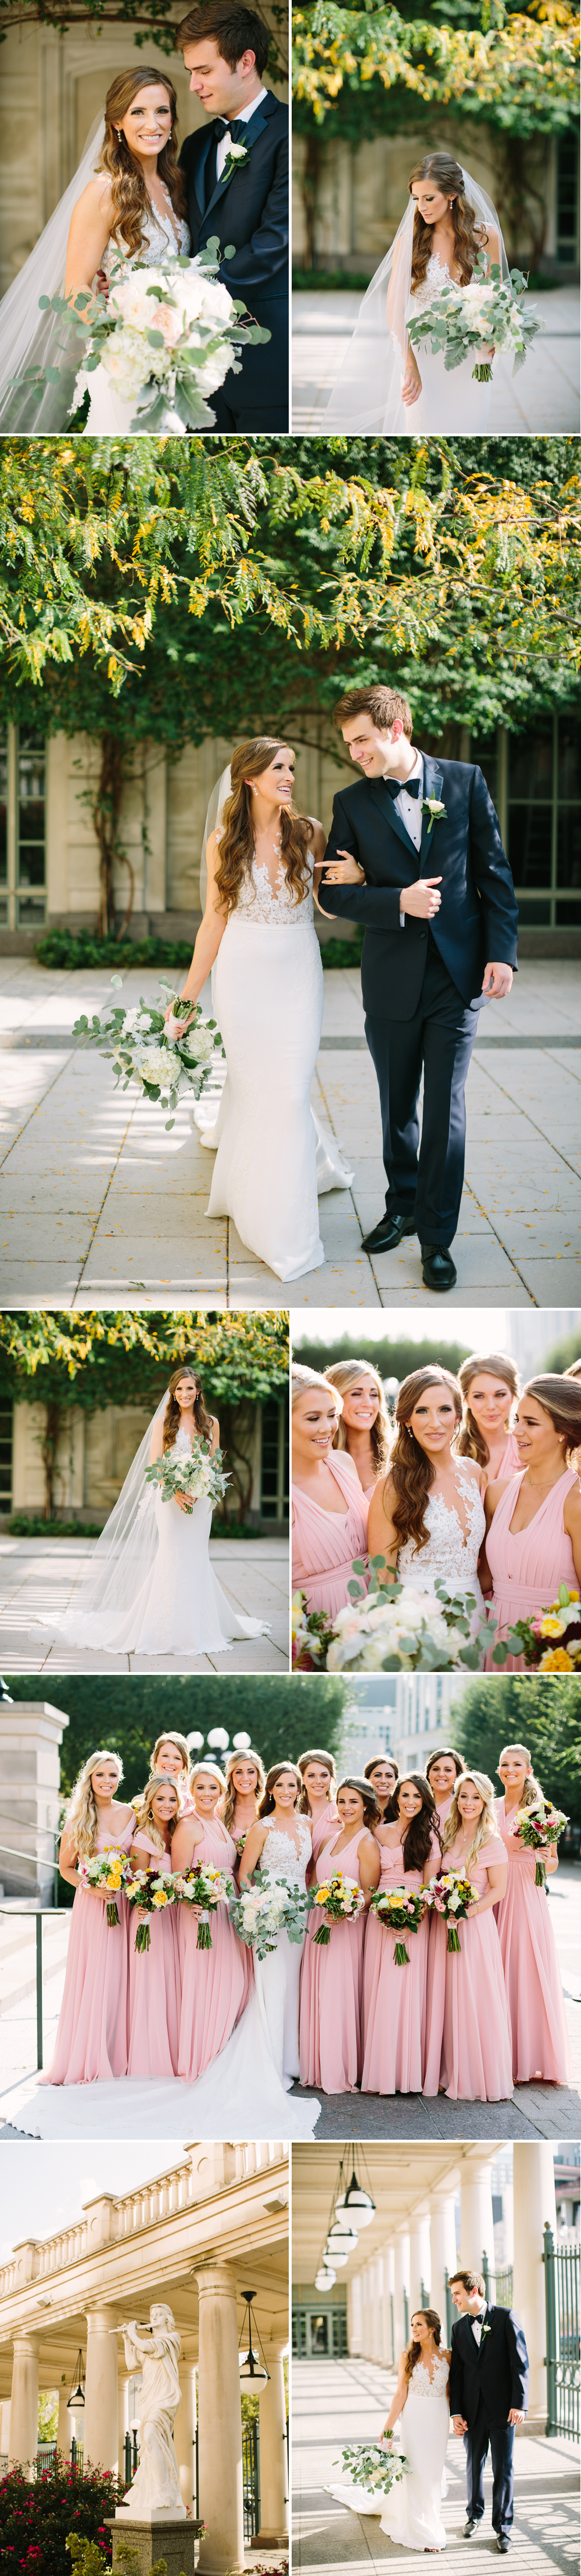 Nashville_symphony_wedding_photographer_Rachel_Moore_3.jpg